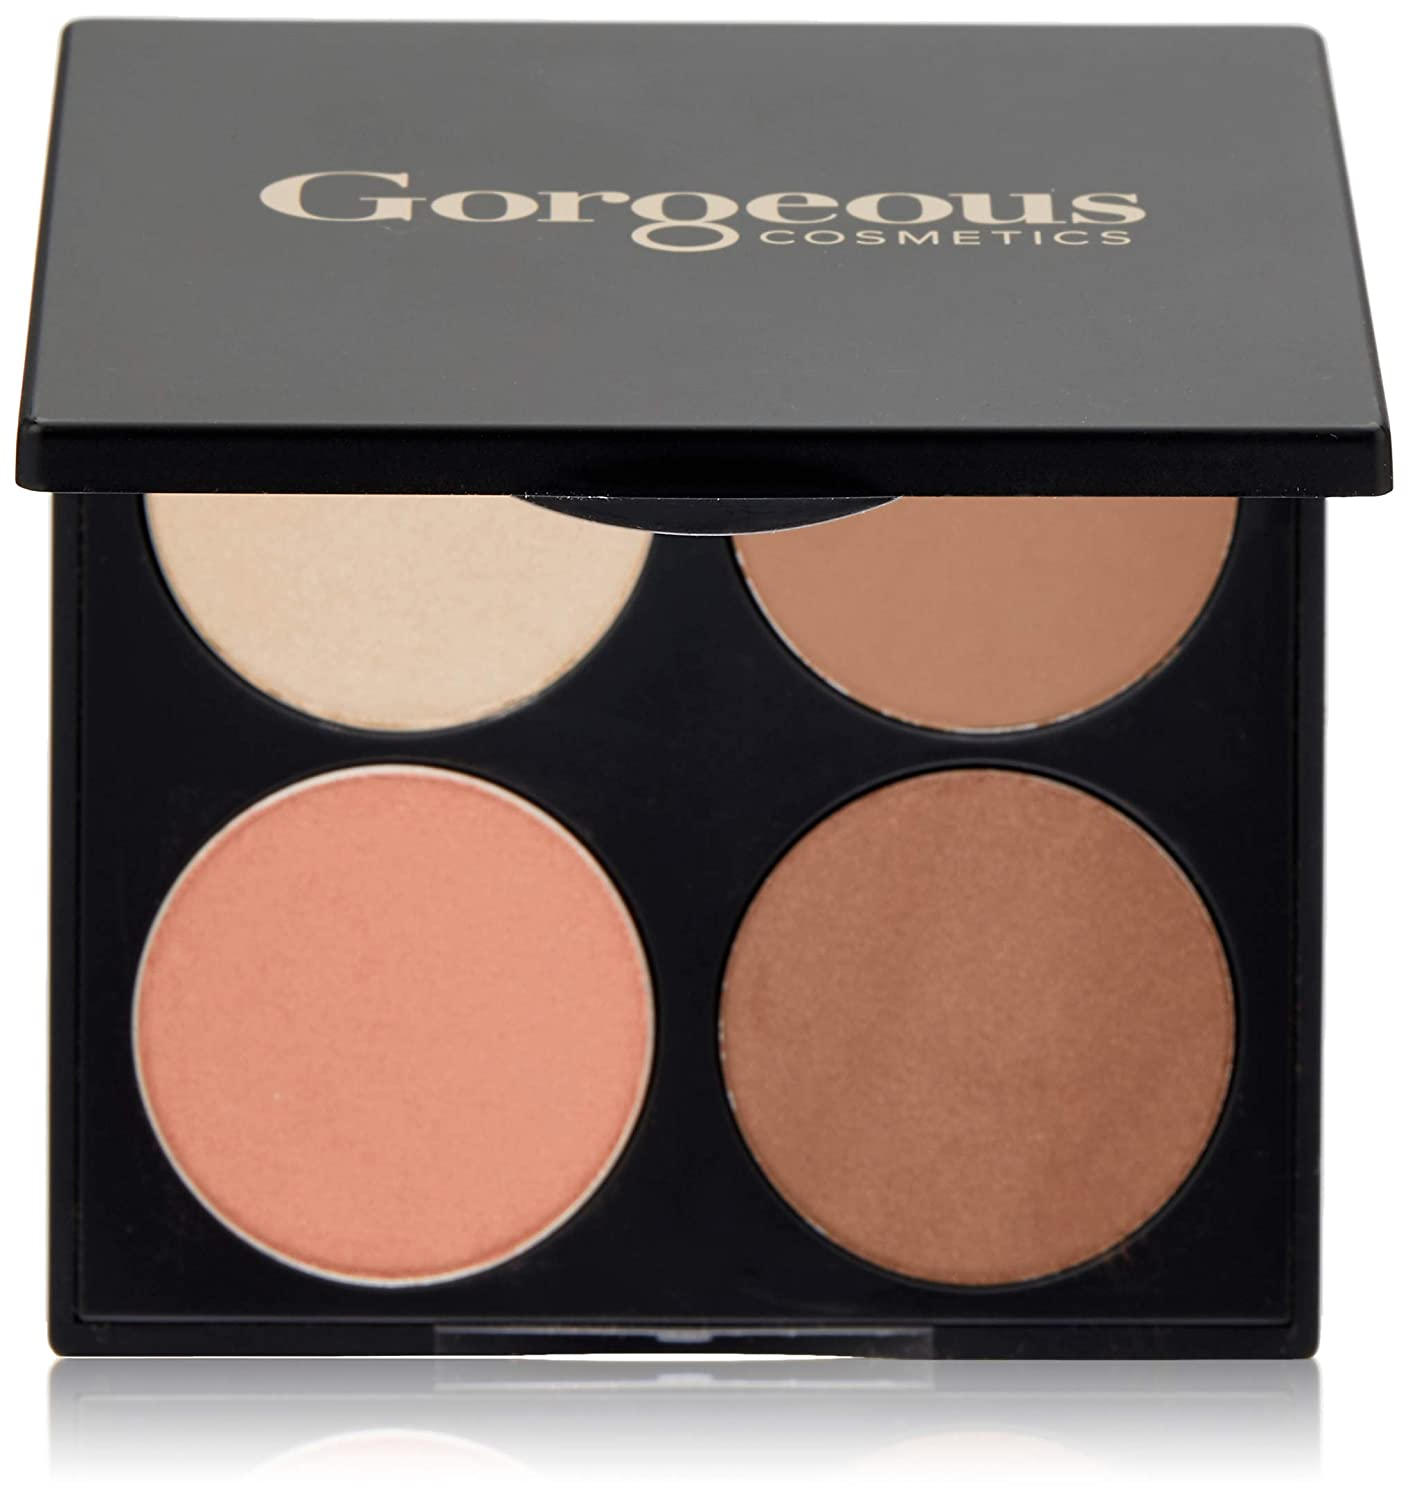 Gorgeous Cosmetics All-In-One Eyeshadow Palette, for Blue Eyes, 4 shades, Compact with Mirror